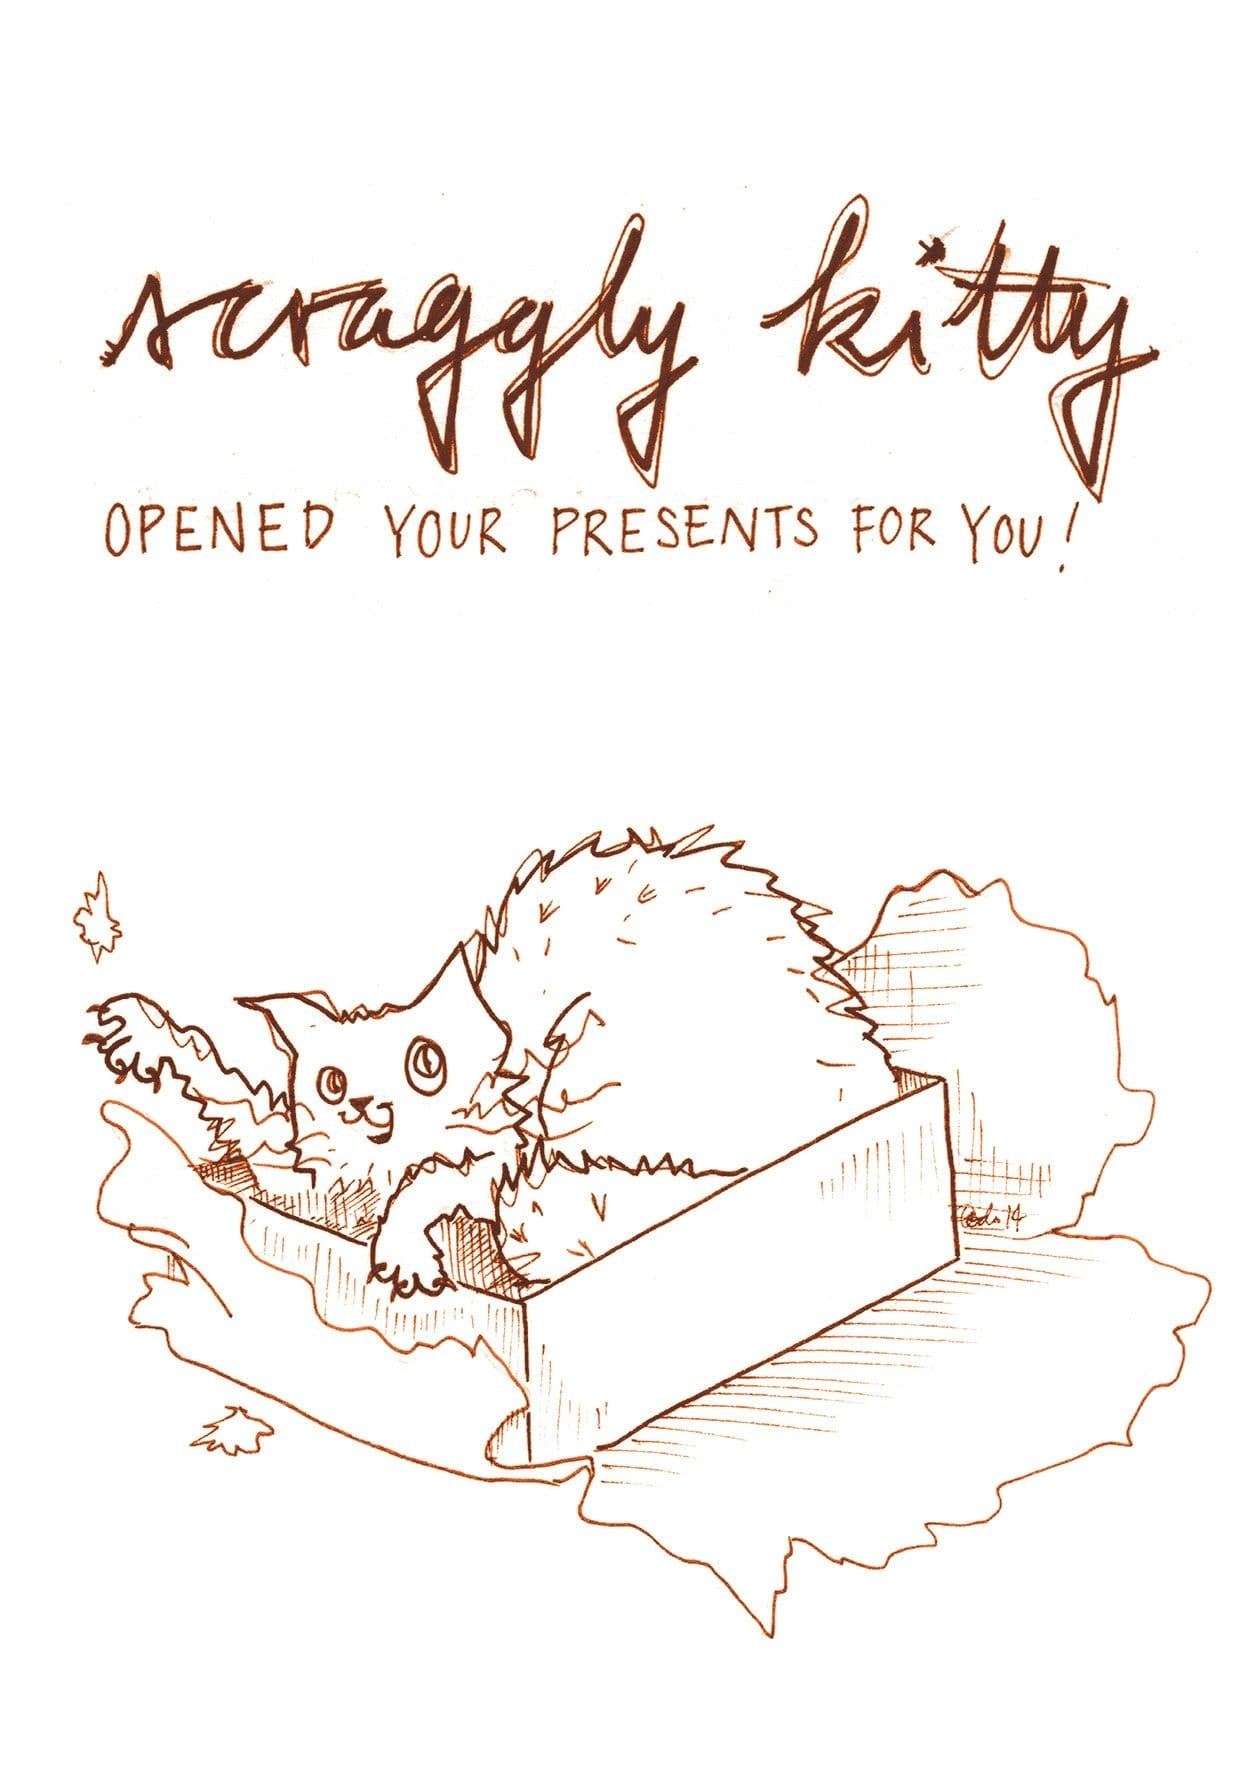 Scraggly Kitty Opened Your Presents For You Greeting Card